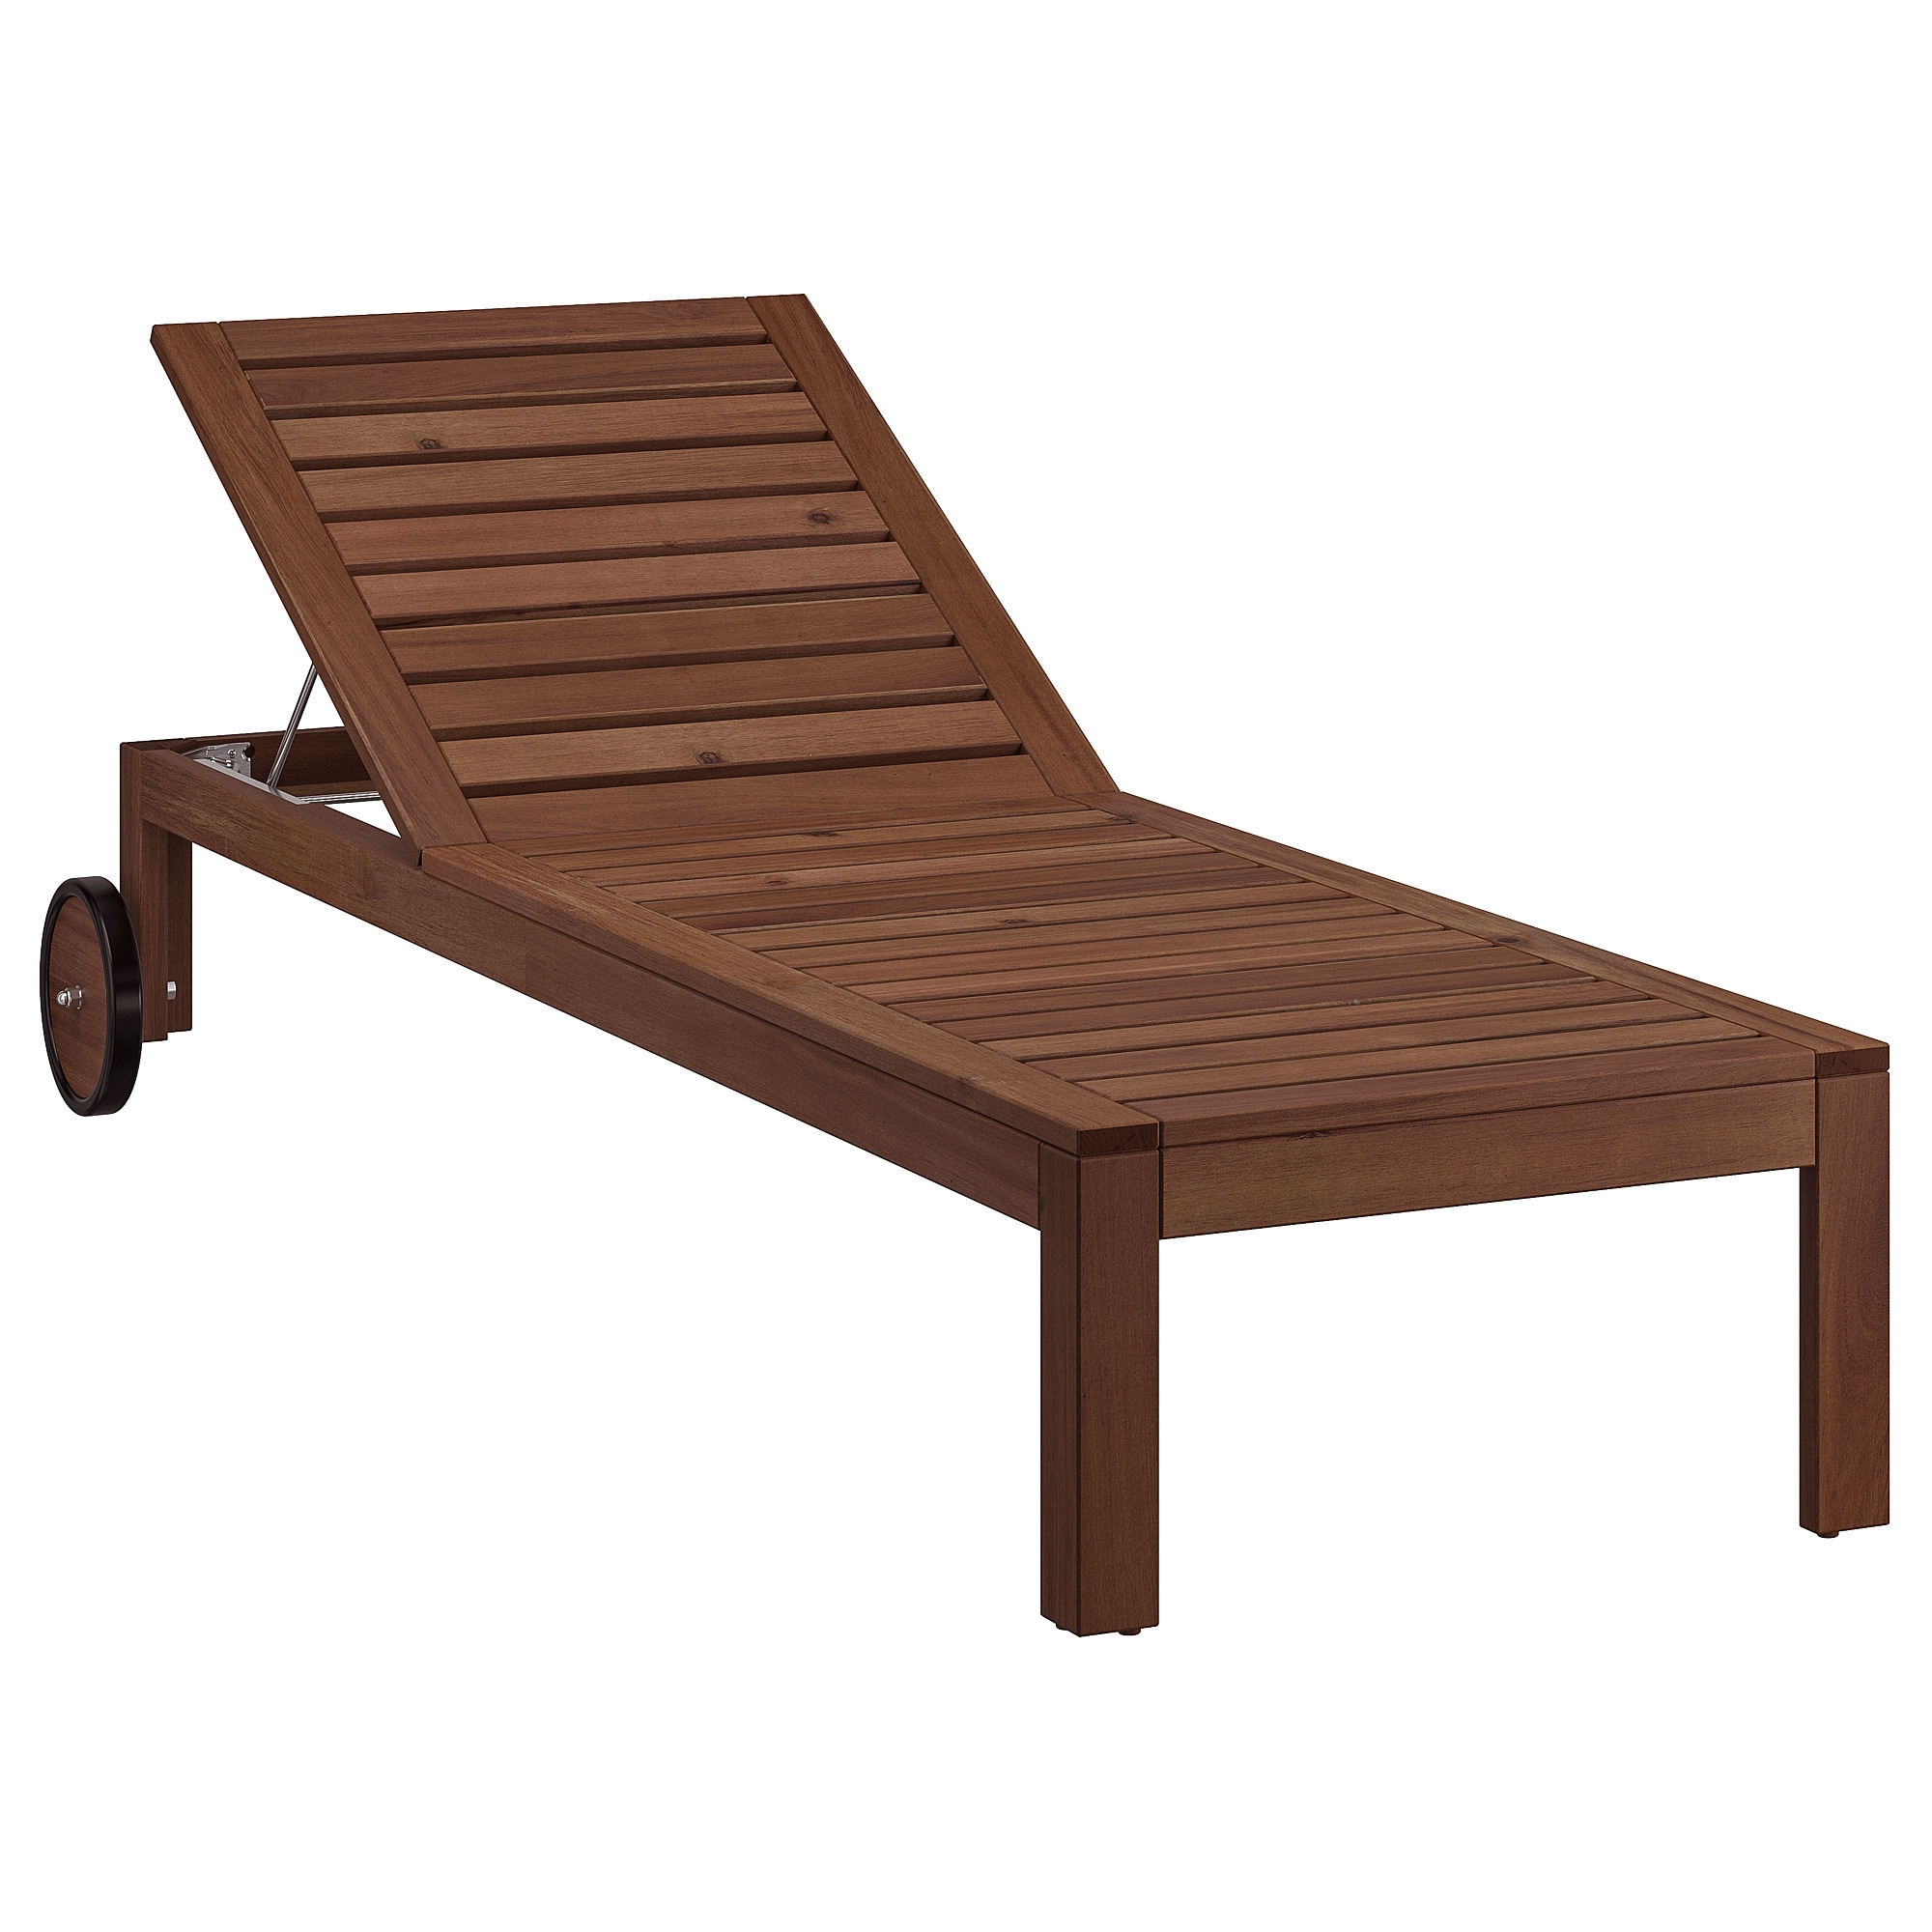 Best And Newest Outdoor 3 Piece Acacia Wood Chaise Lounge Sets With Chaise Äpplarö Brown Stained Brown (View 5 of 25)